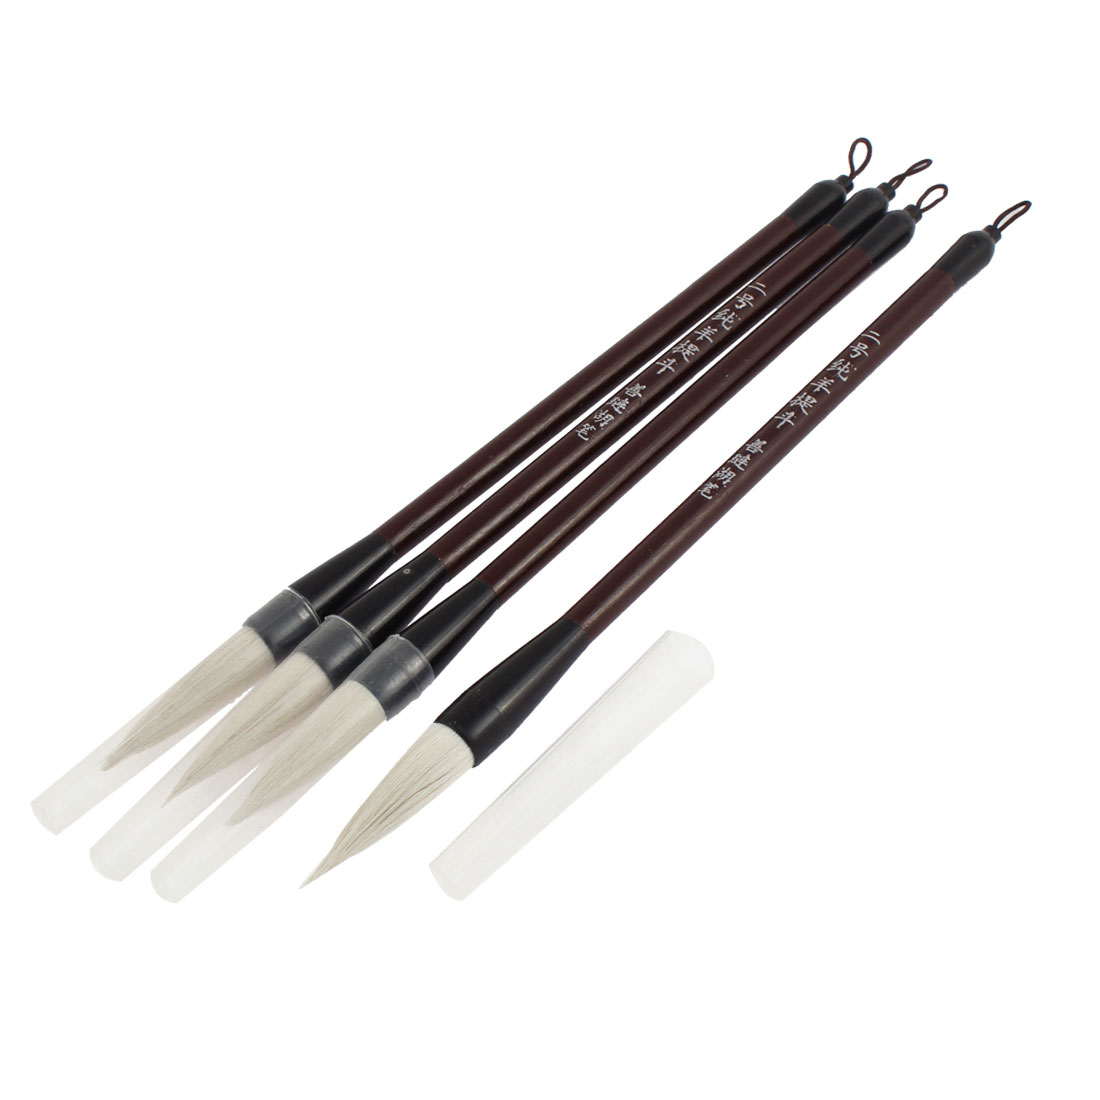 "Chinese Traditional Writing Pen Brush 12"" Length 4PCS"